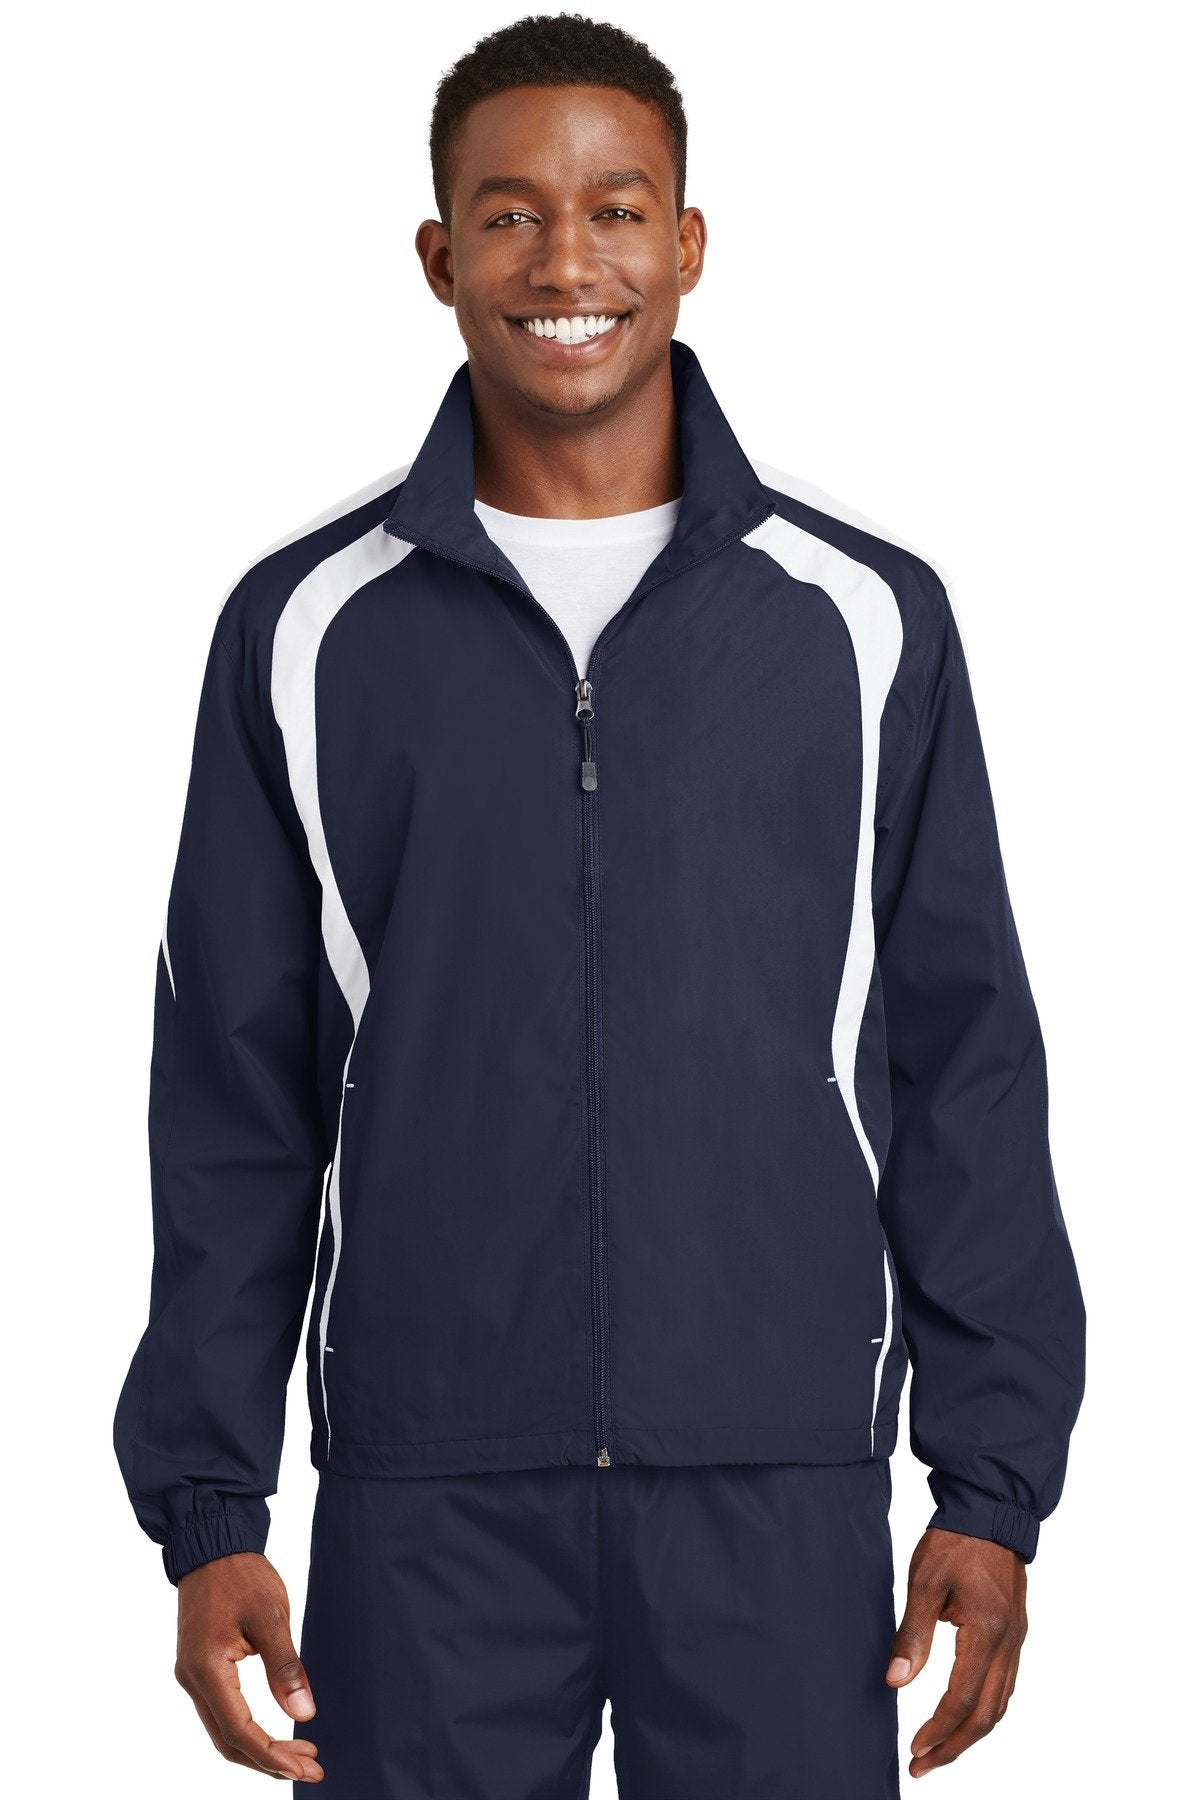 True Navy/White - Sport-Tek JST60